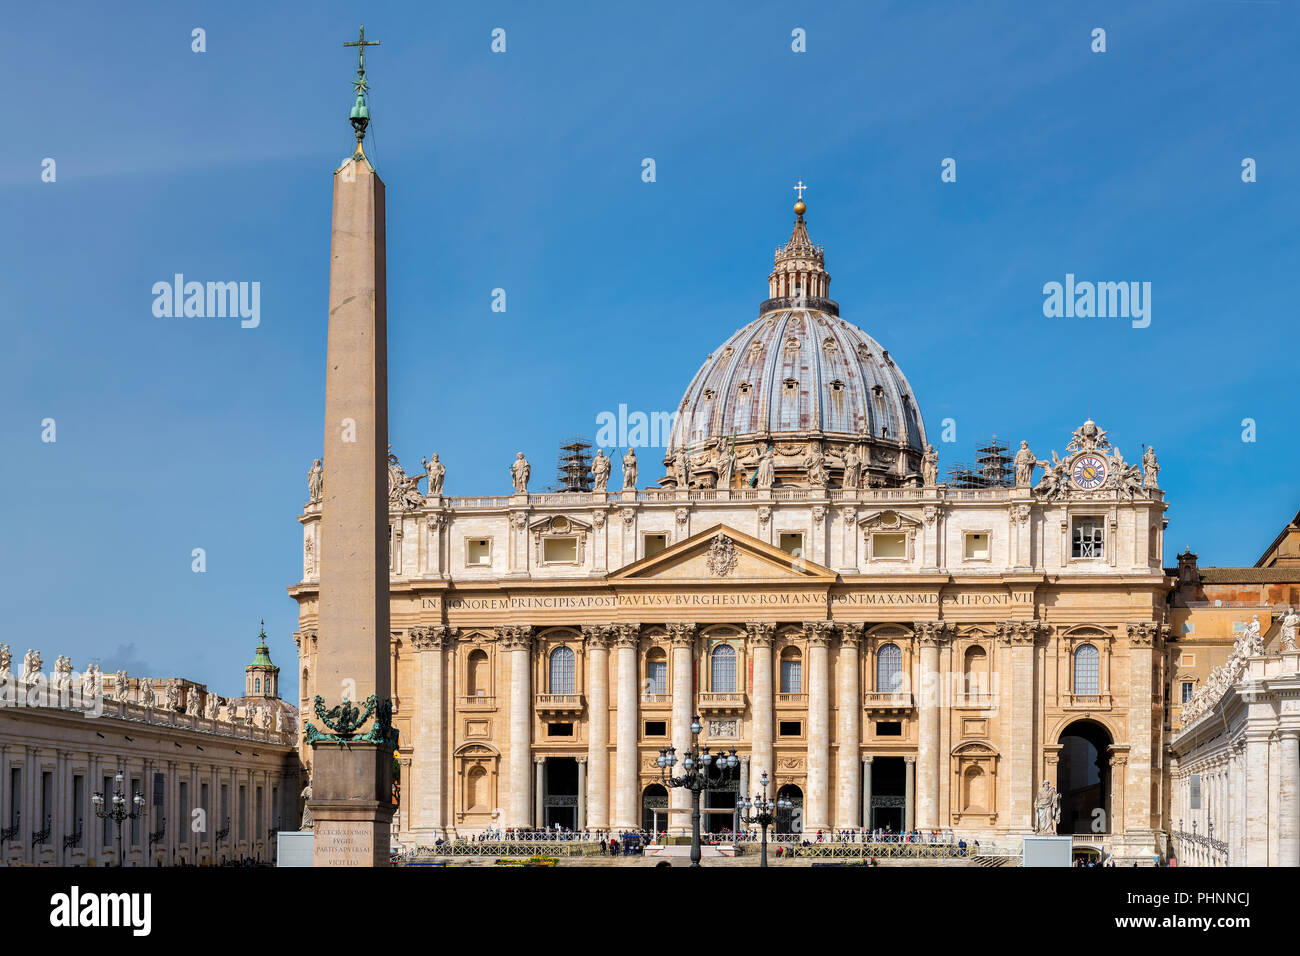 Front view of St. Peters basilica from St. Peter's square in Vatican City, Vatican. Stock Photo